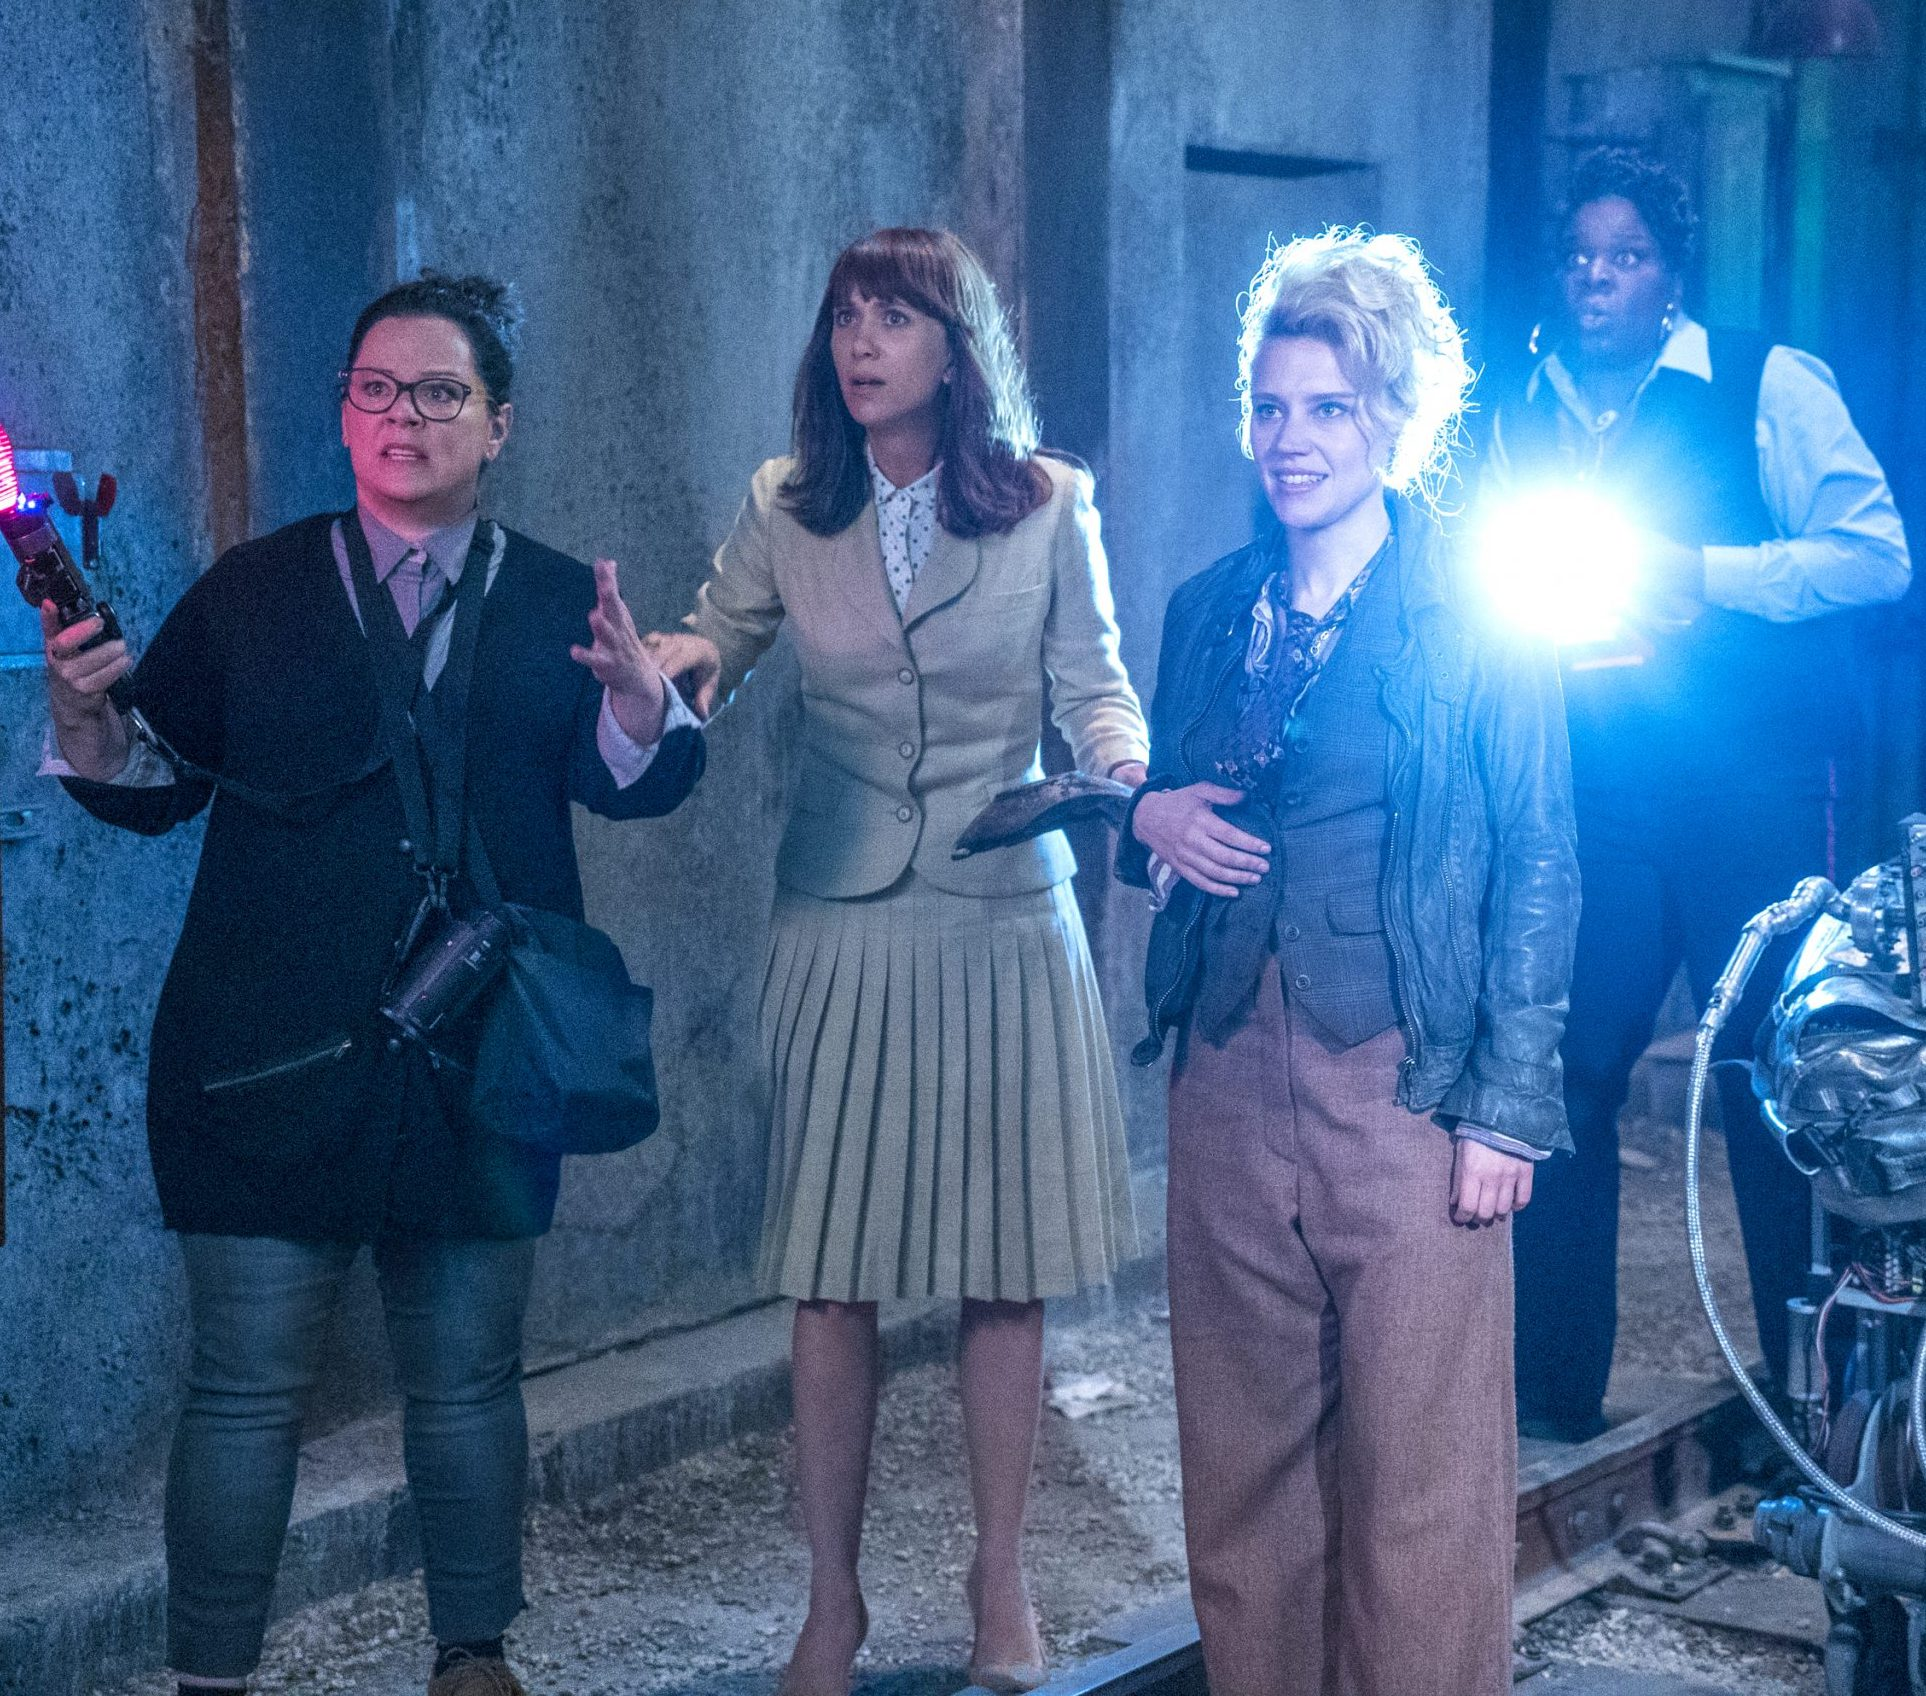 ghostbusters1 scaled e1605184117682 20 Movie Remakes That Were Nothing Like The Original